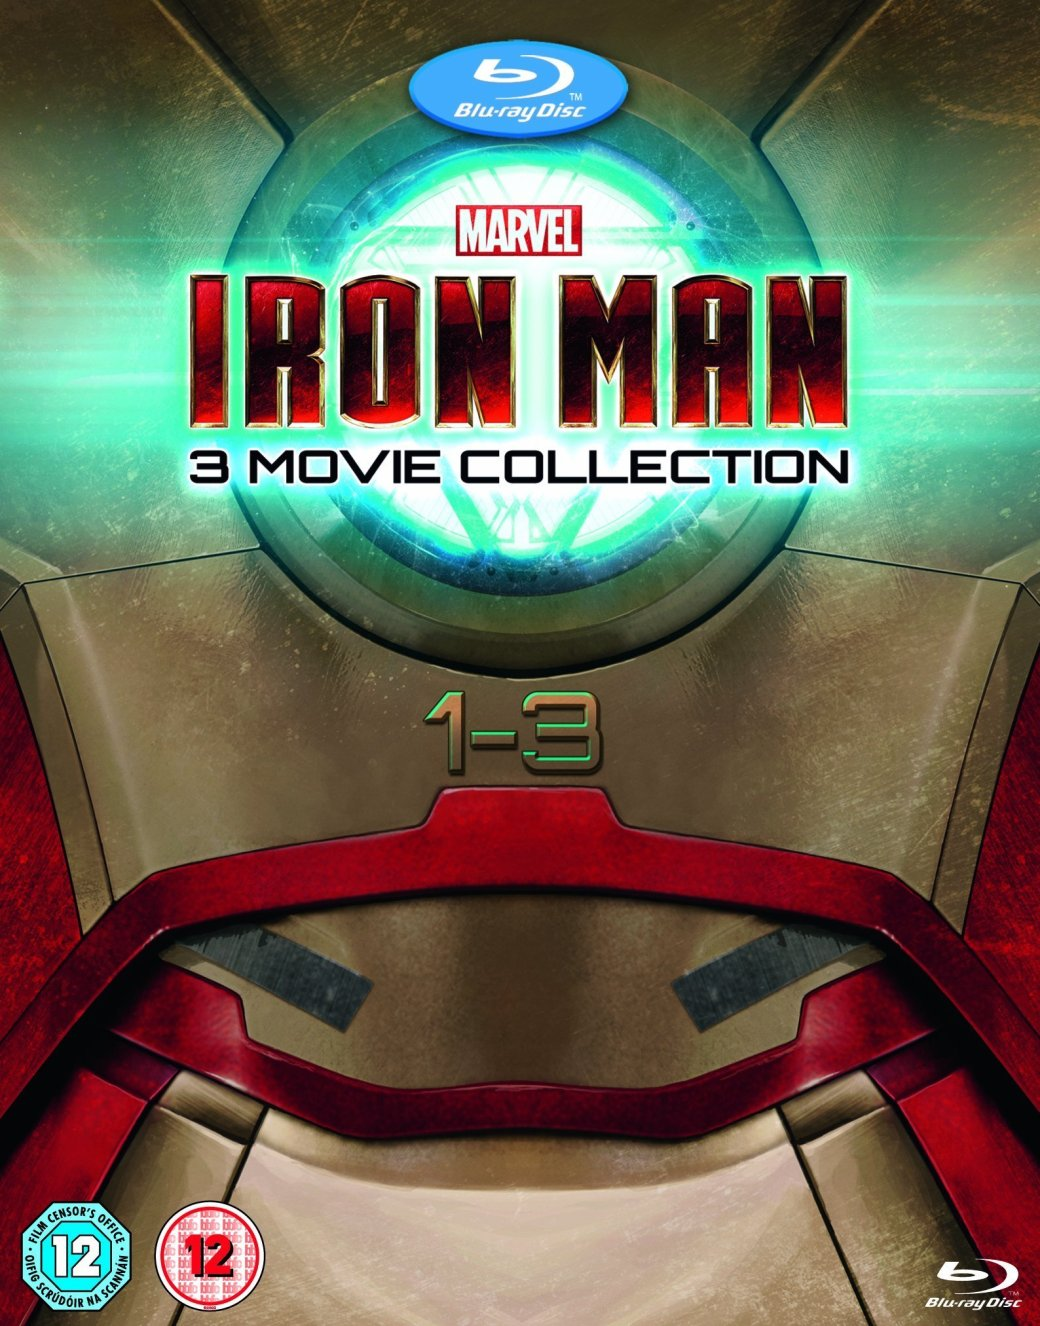 IronMan.Blu-Ray.Collections